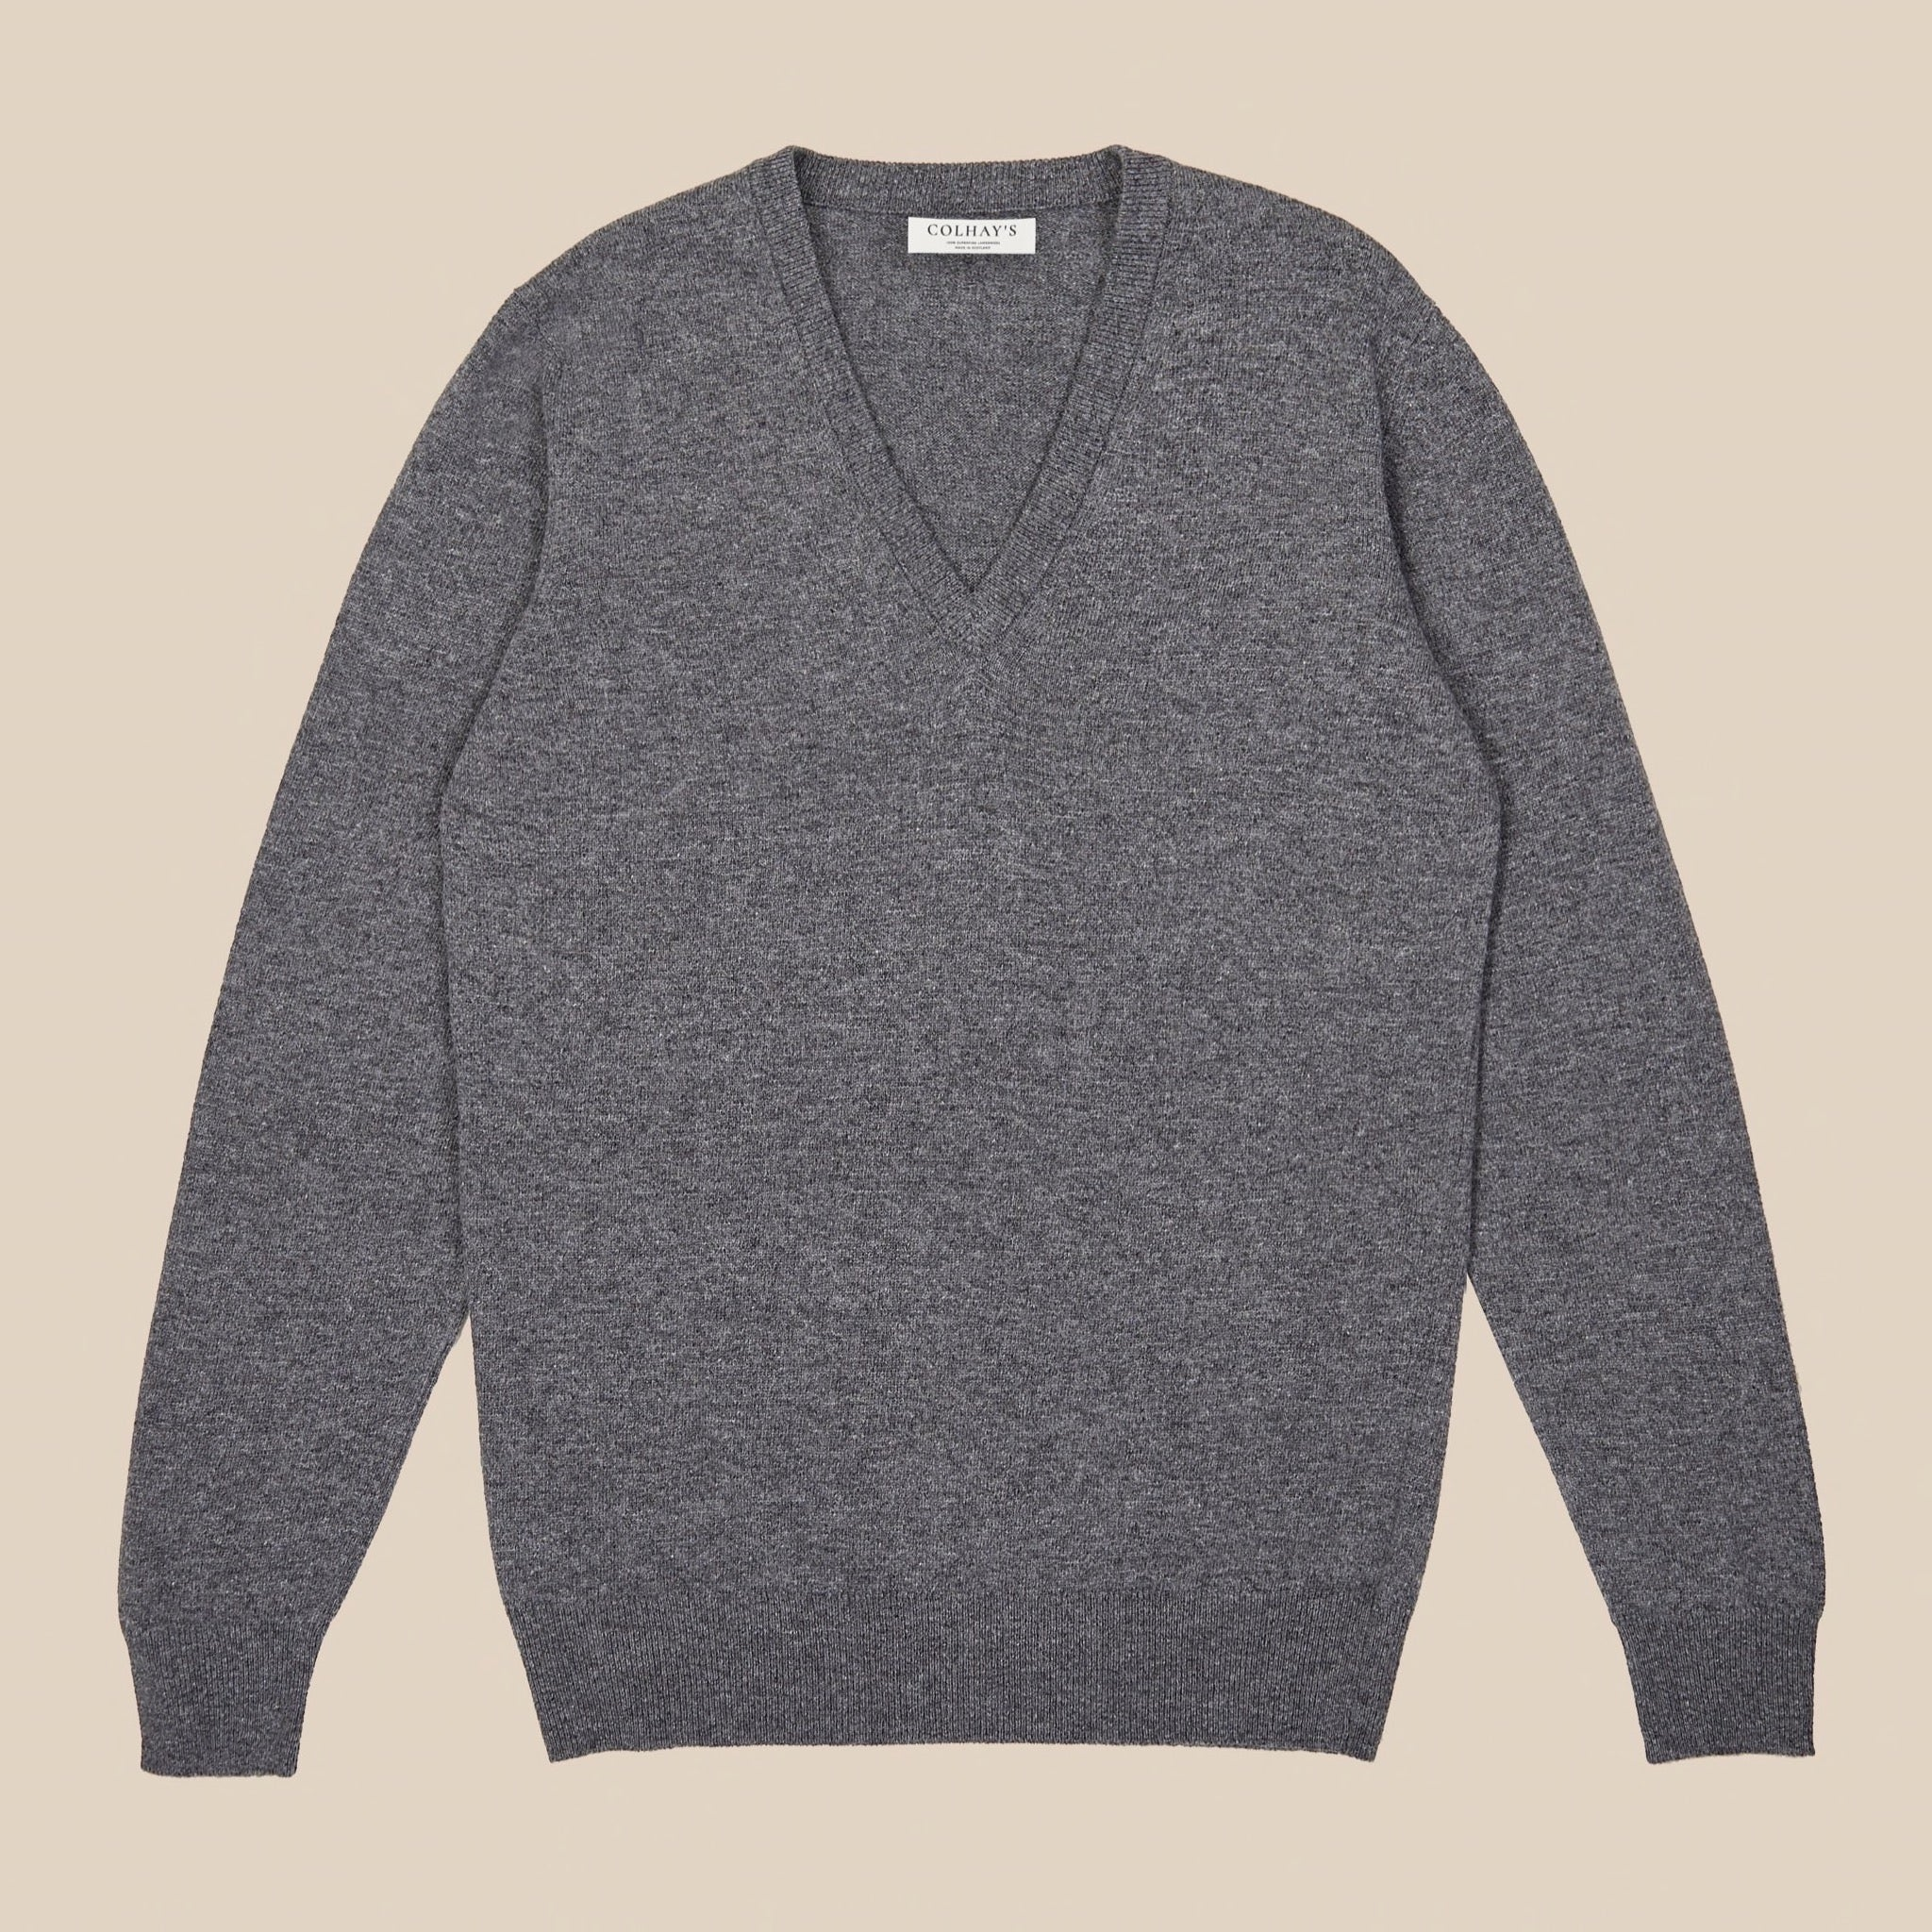 Lambswool v neck in grey